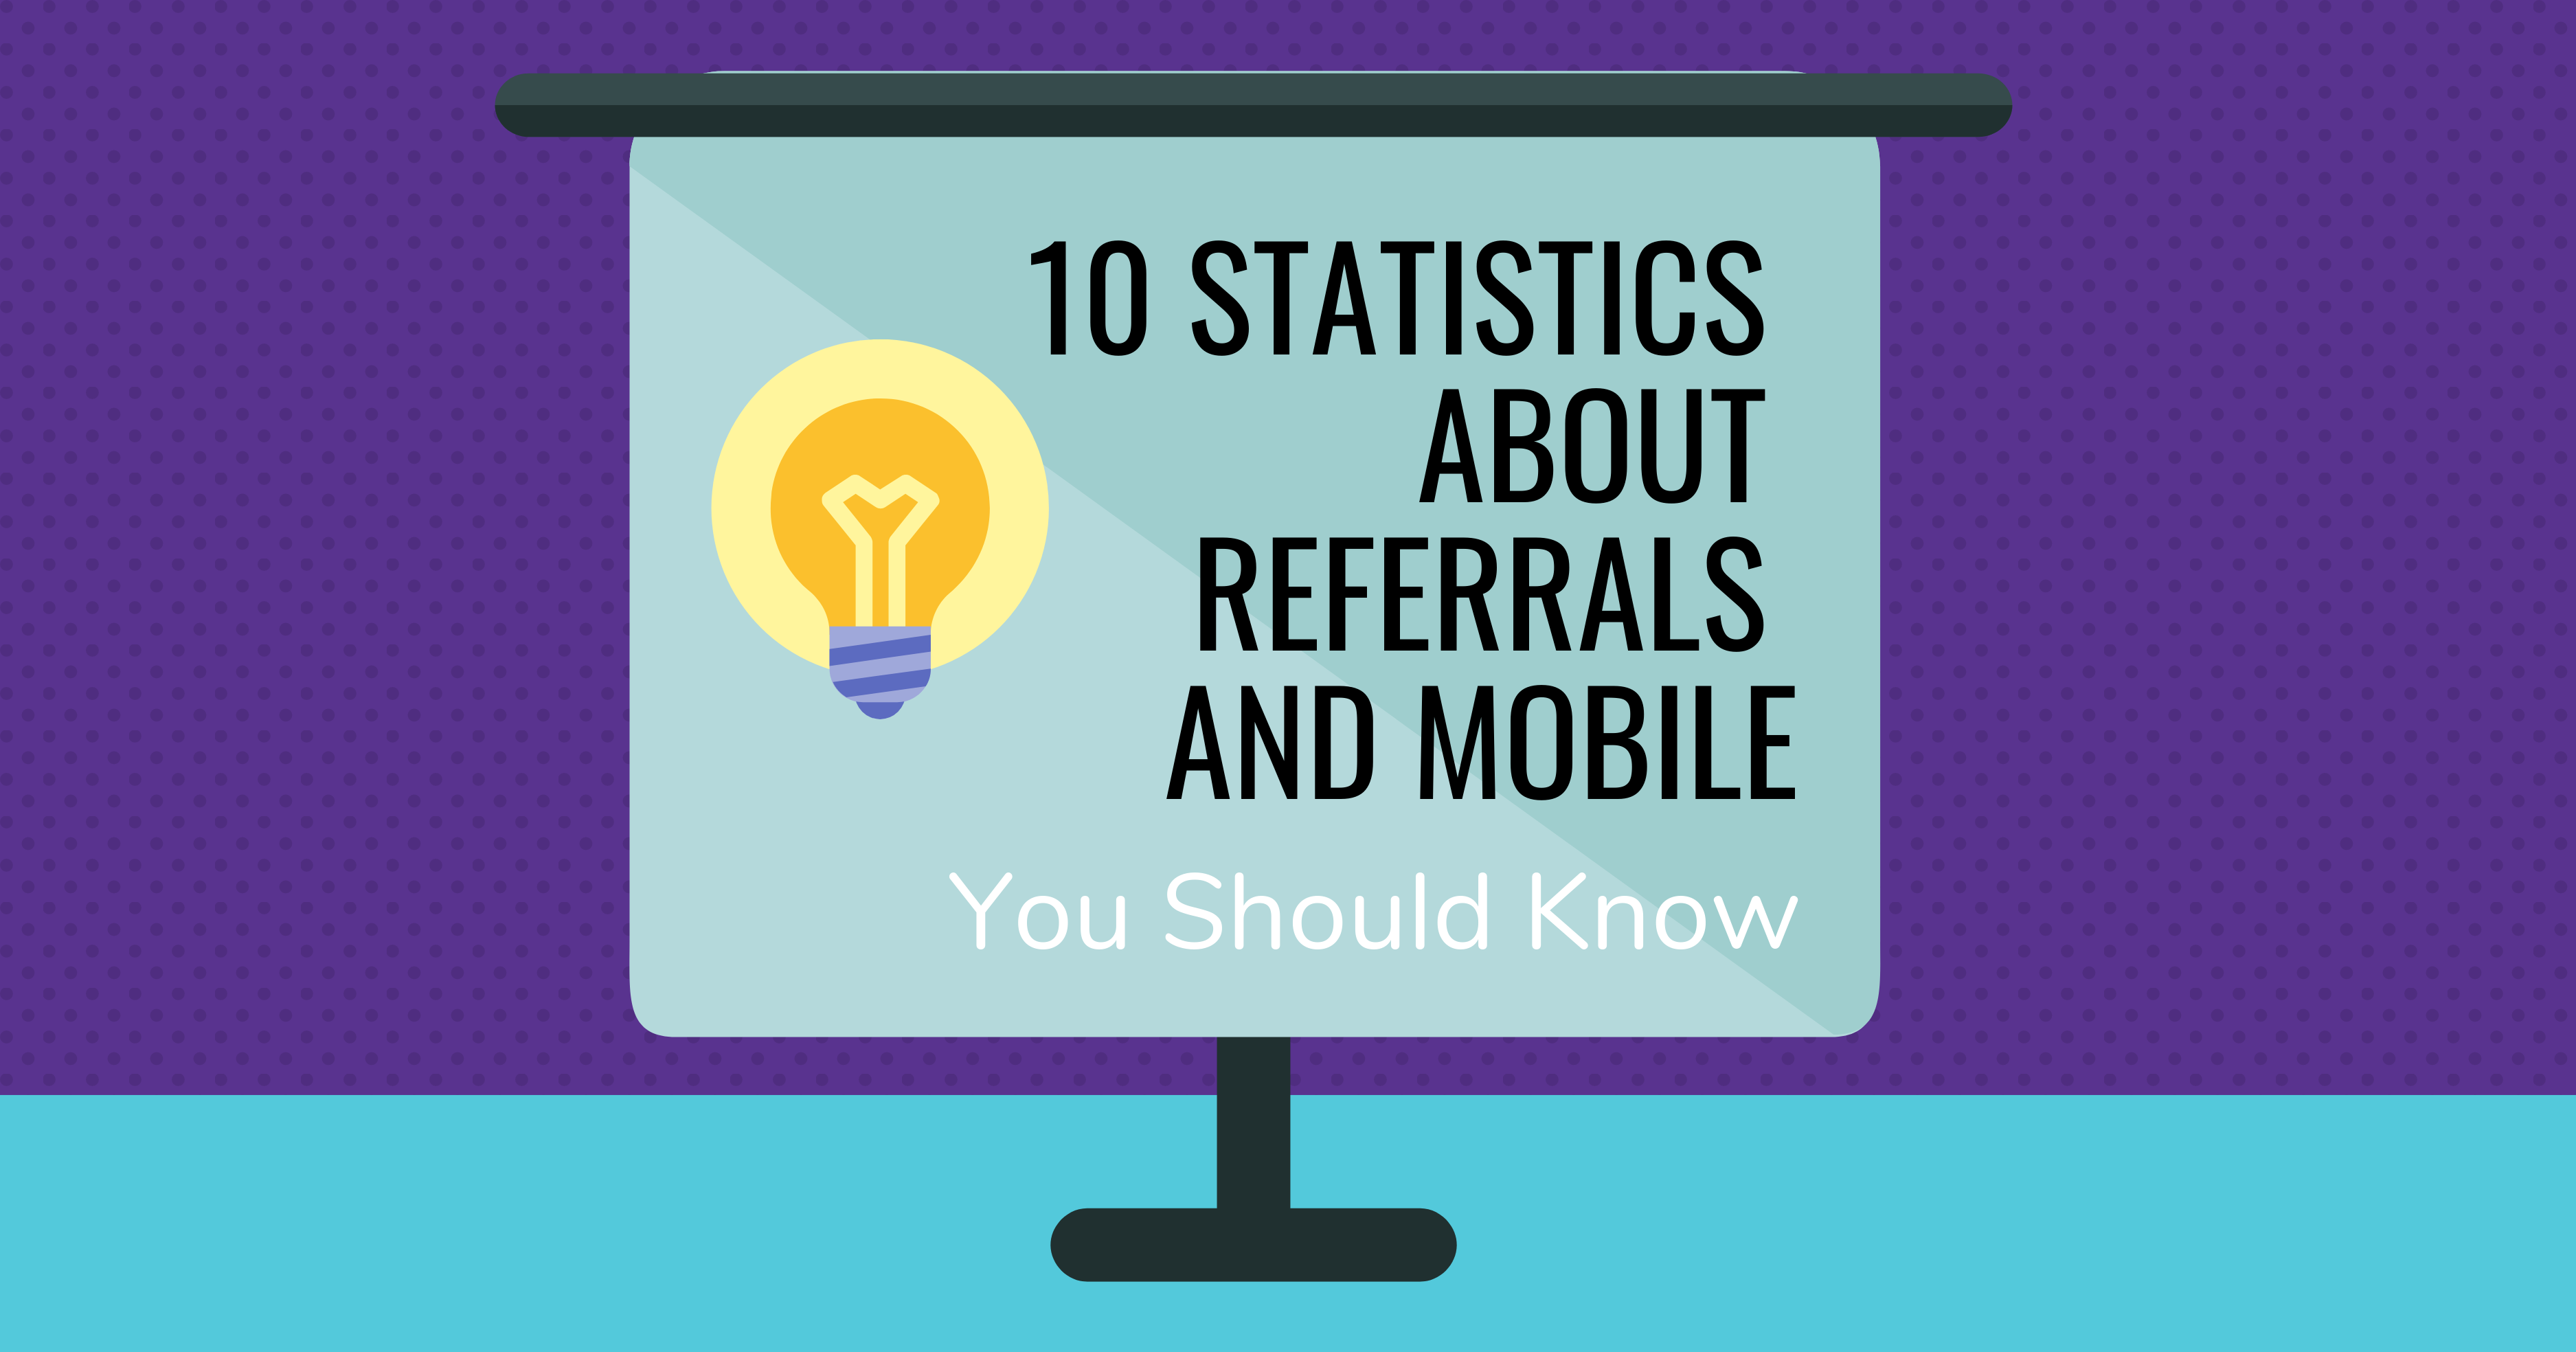 Long Pic_10 Statistics About Referrals and Mobile You Should Know